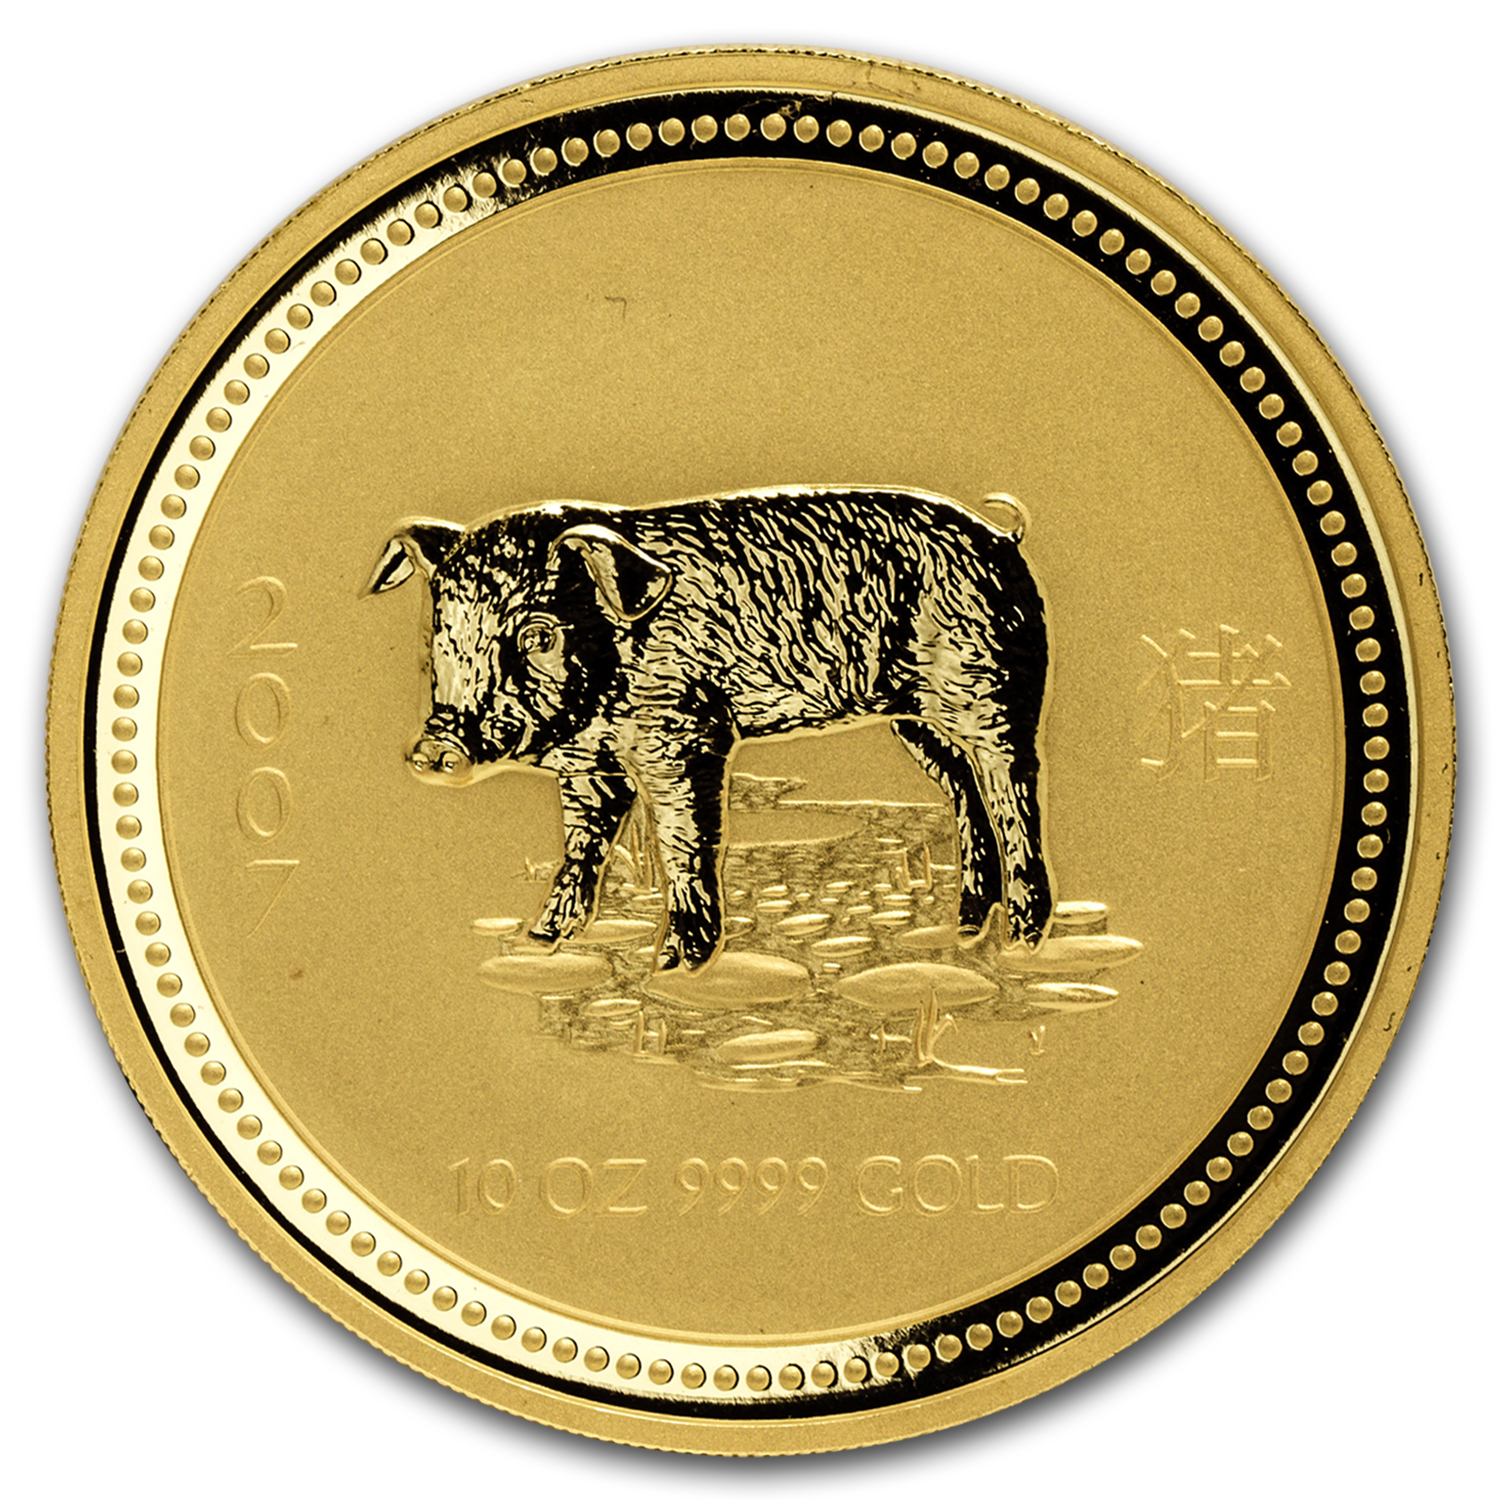 2007 10 oz Gold Lunar Year of the Pig BU (Series I)